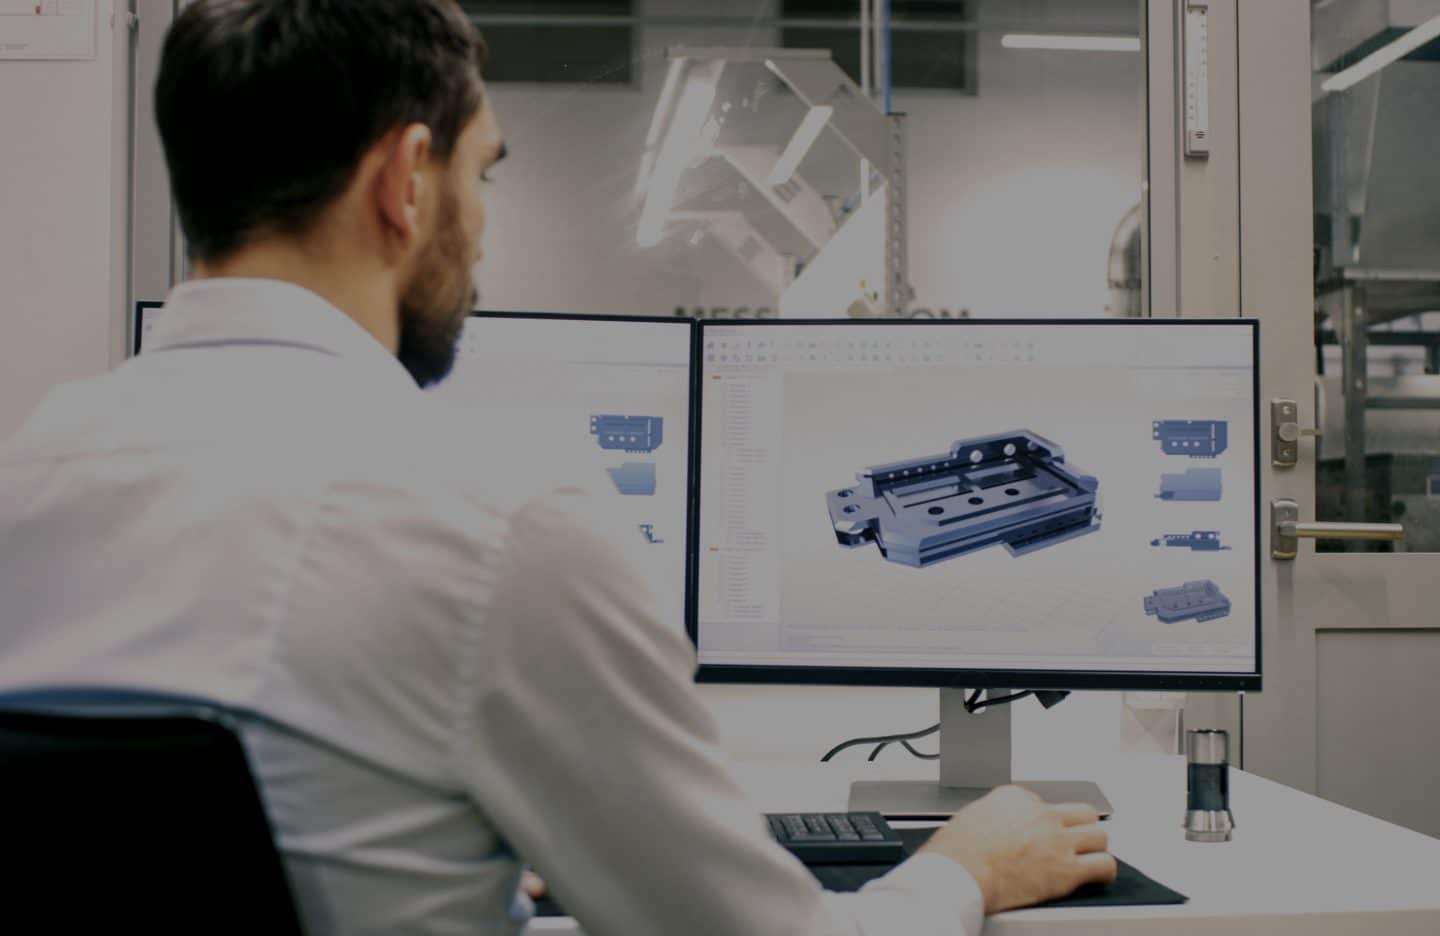 Engineer designs optimal component for customers